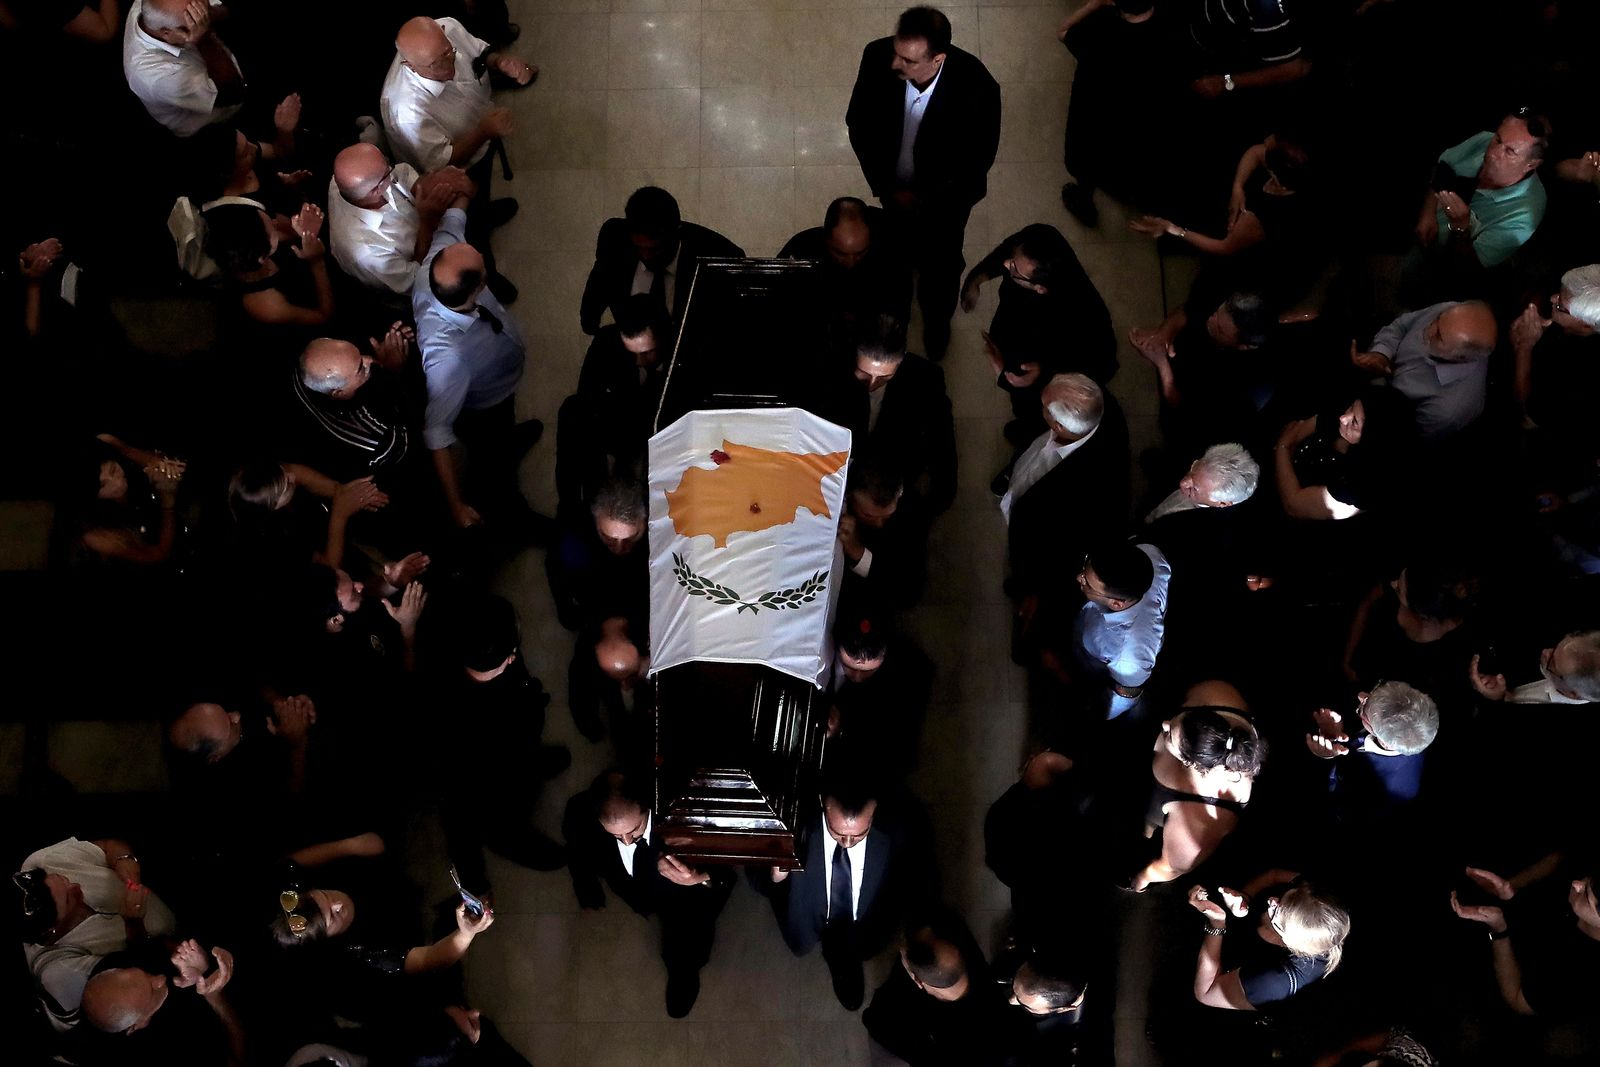 Pallbearers carry the coffin of the former Cyprus' President Dimitris Christofias during his state funeral at the Orthodox Christian Church of the Lord's Wisdom in capital Nicosia, Cyprus, Tuesday, June 25, 2019.{ } (AP Photo/Petros Karadjias)